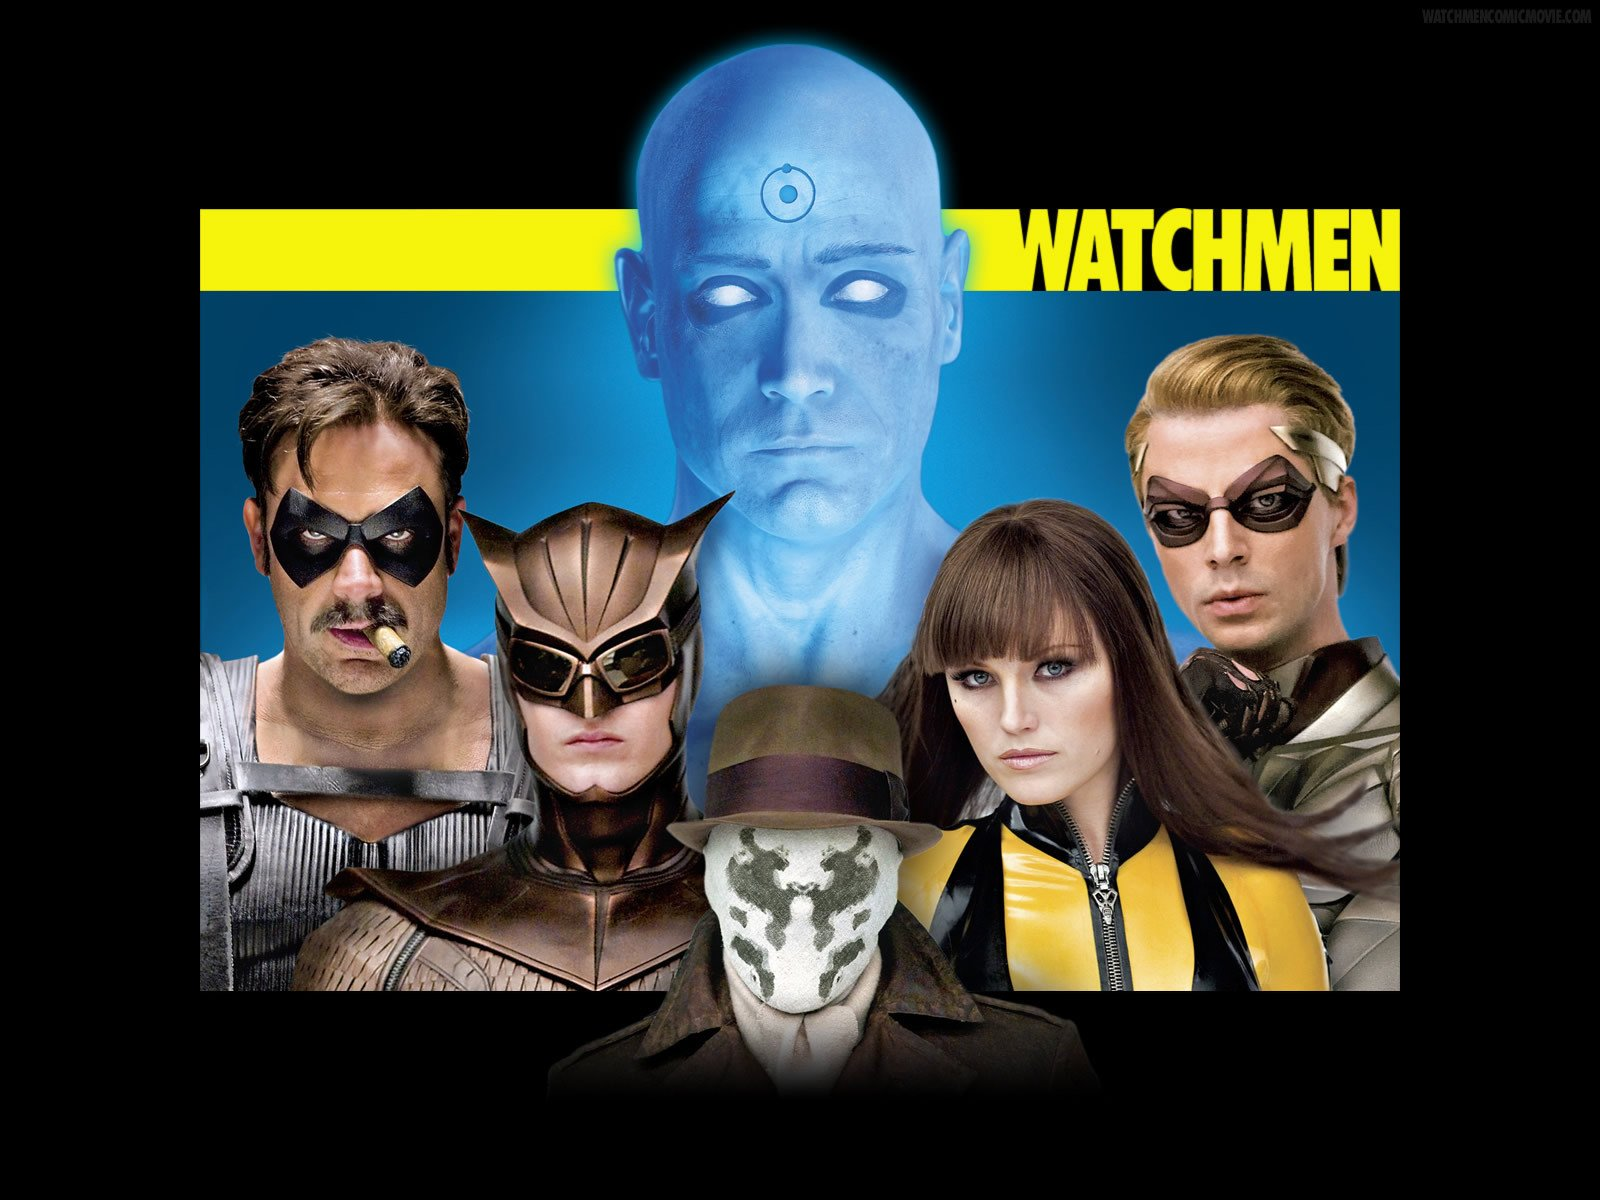 Cast Of Watchmen Wallpaper and Background | 1600x1200 | ID ... Watchmen Characters Silk Spectre